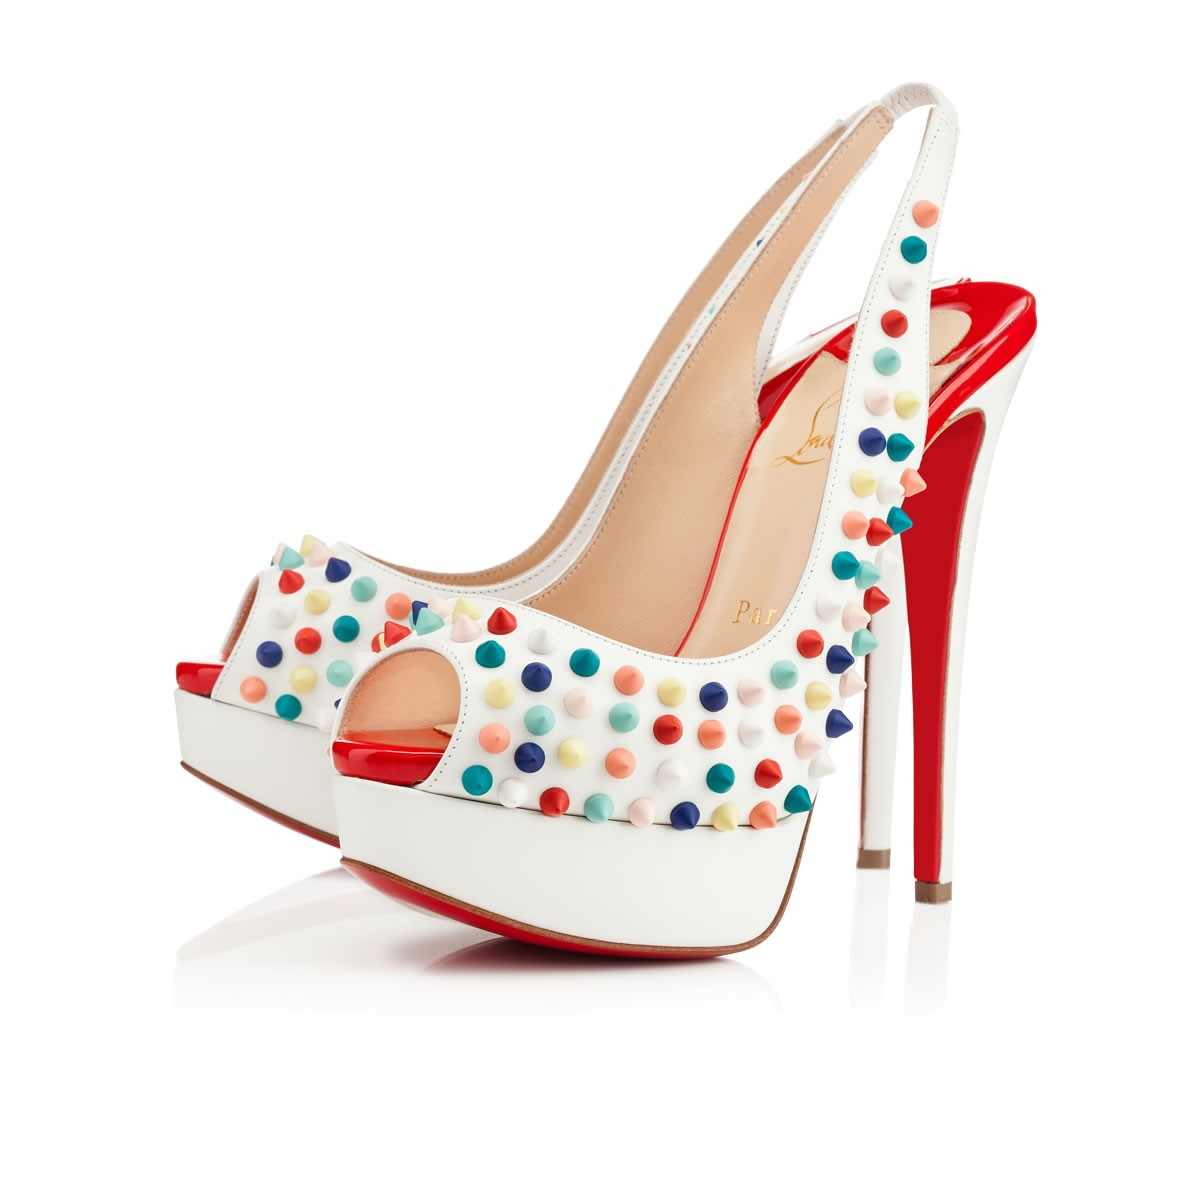 new product ecb8e 9ffa1 CHRISTIAN LOUBOUTIN LADY PEEP SLING SPIKES sold by Samore Fly Wear